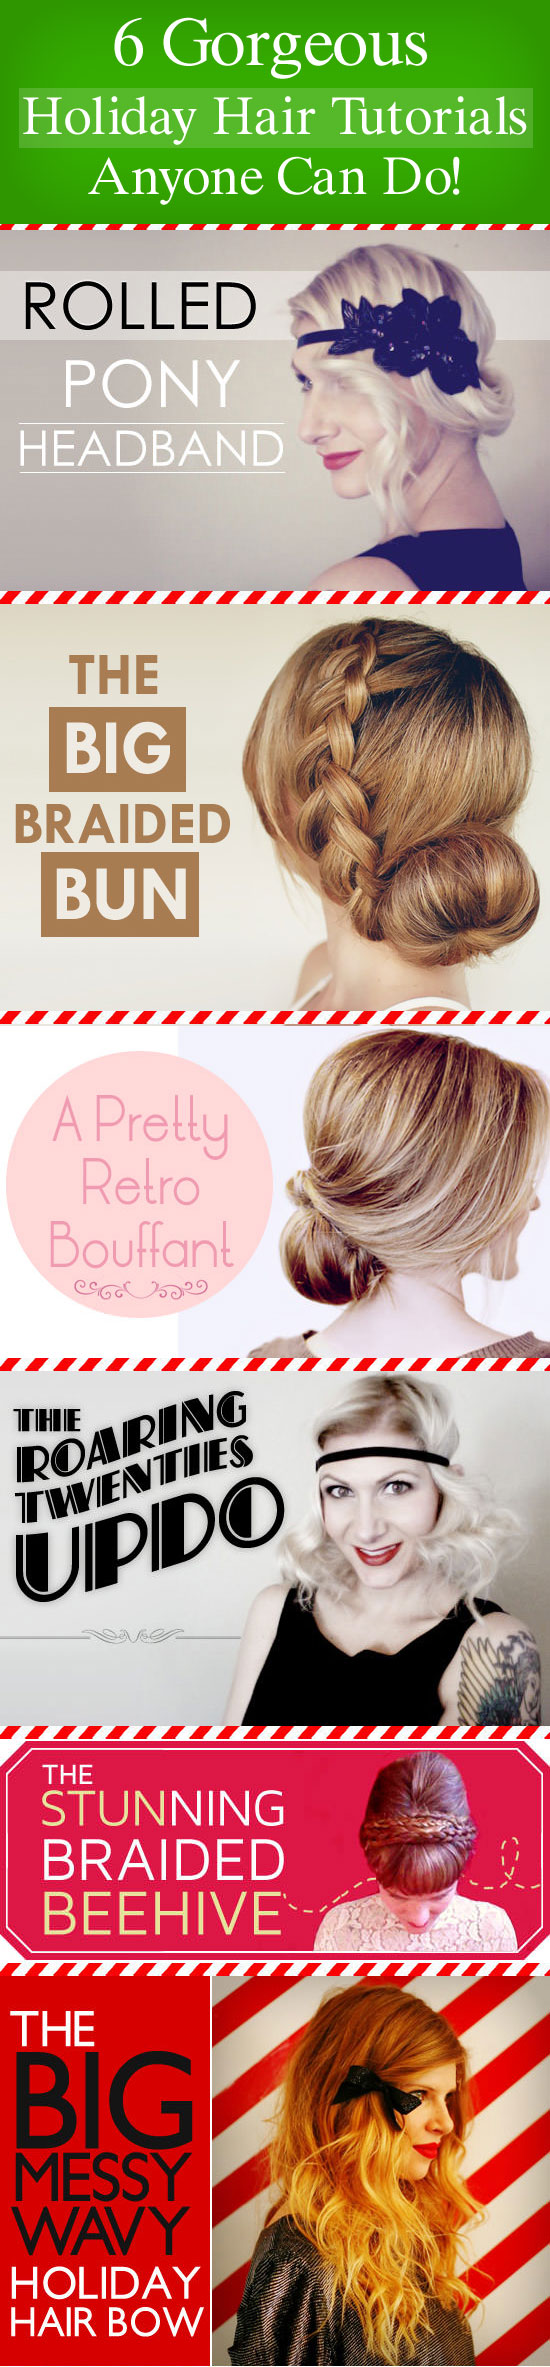 6 Gorgeous Holiday Hair Tutorials Anyone Can Do!